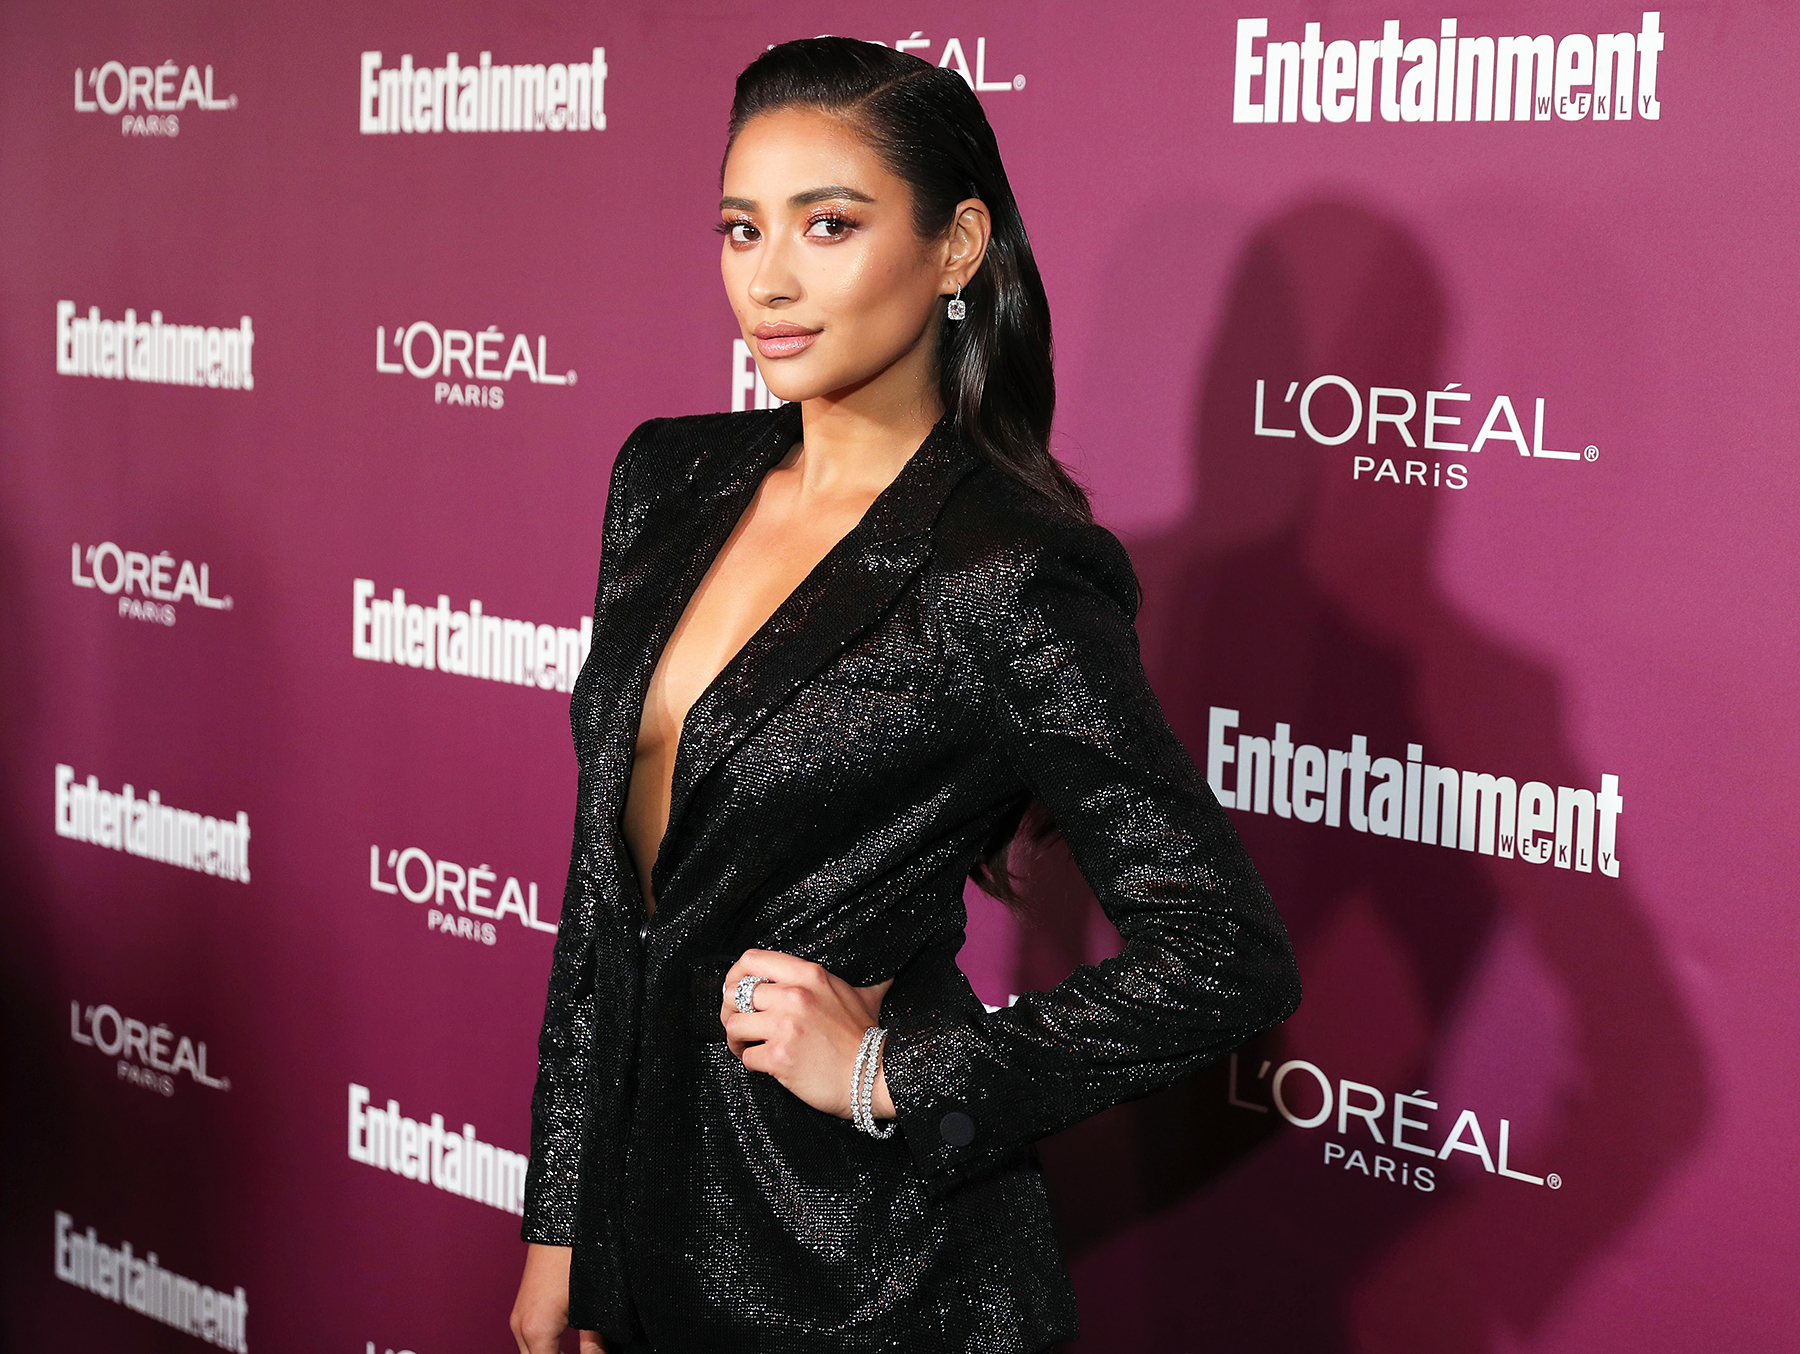 Shay Mitchell 25 Things You Don't Know About Me